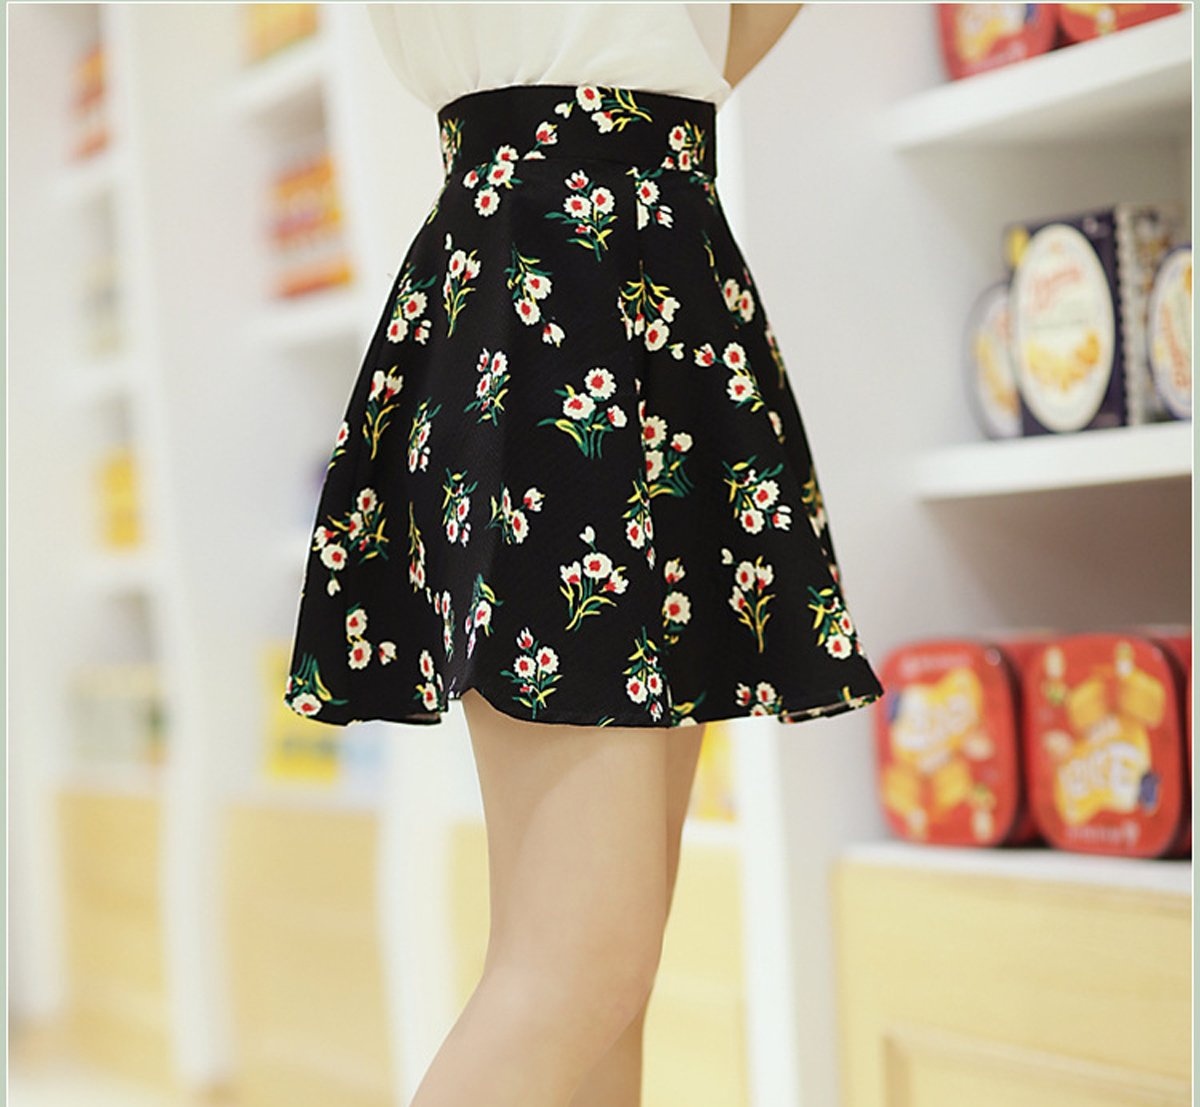 babyHealthy Kpop BTS Love Yourself Her Dress T-Shirt+Floral Skirt Two Piece Suit by babyHealthy (Image #4)